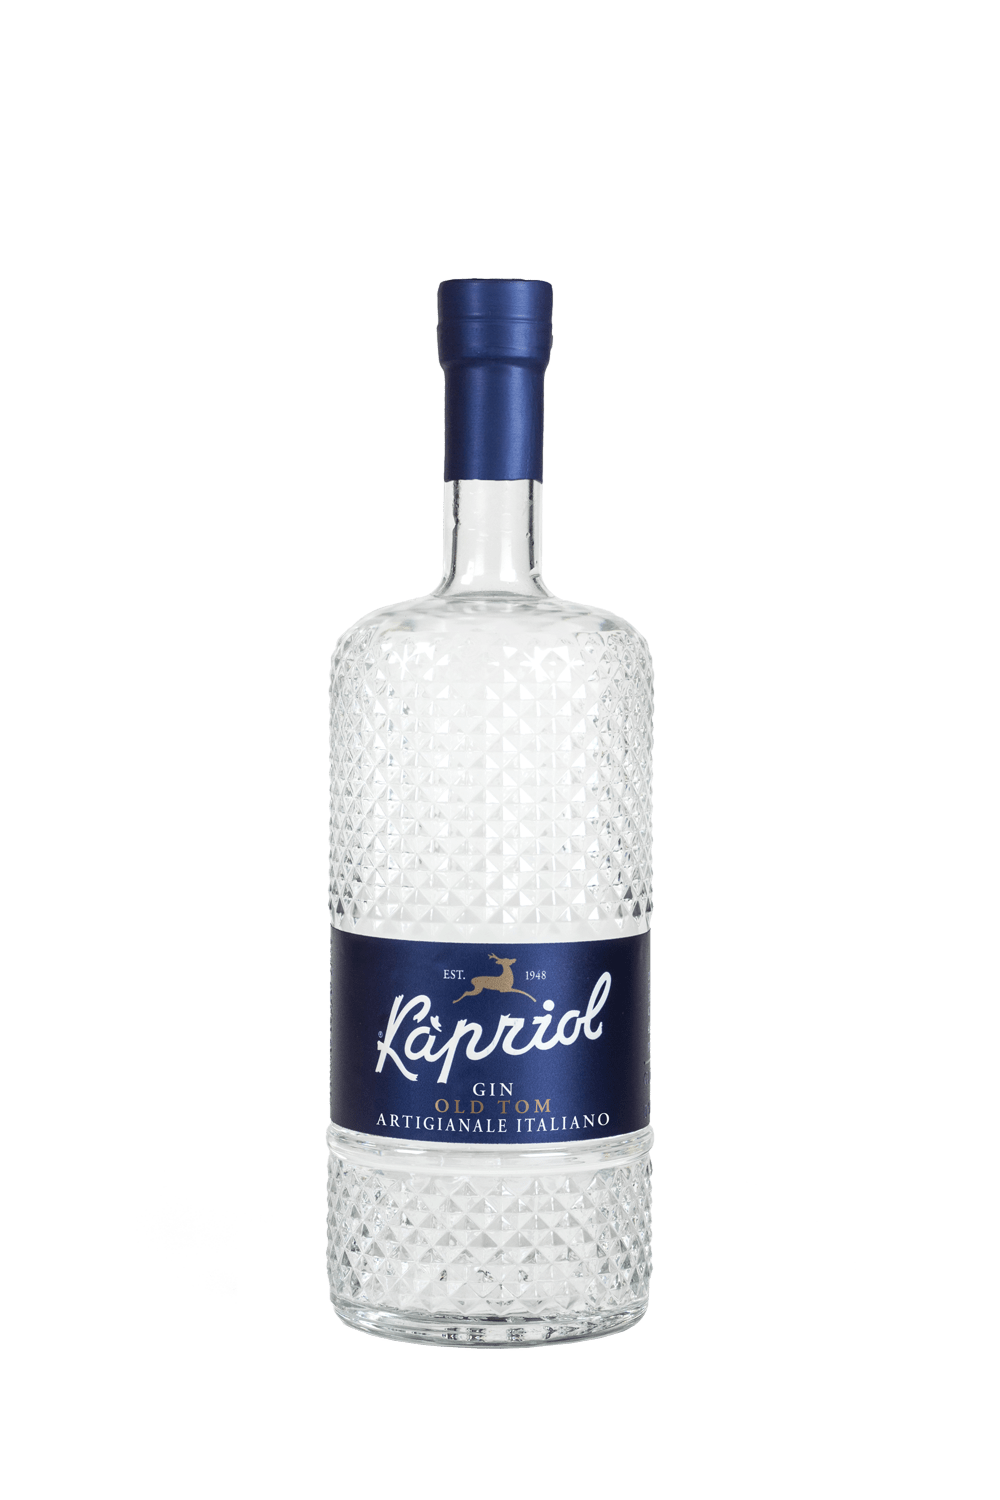 Kapriol Old Tom Gin